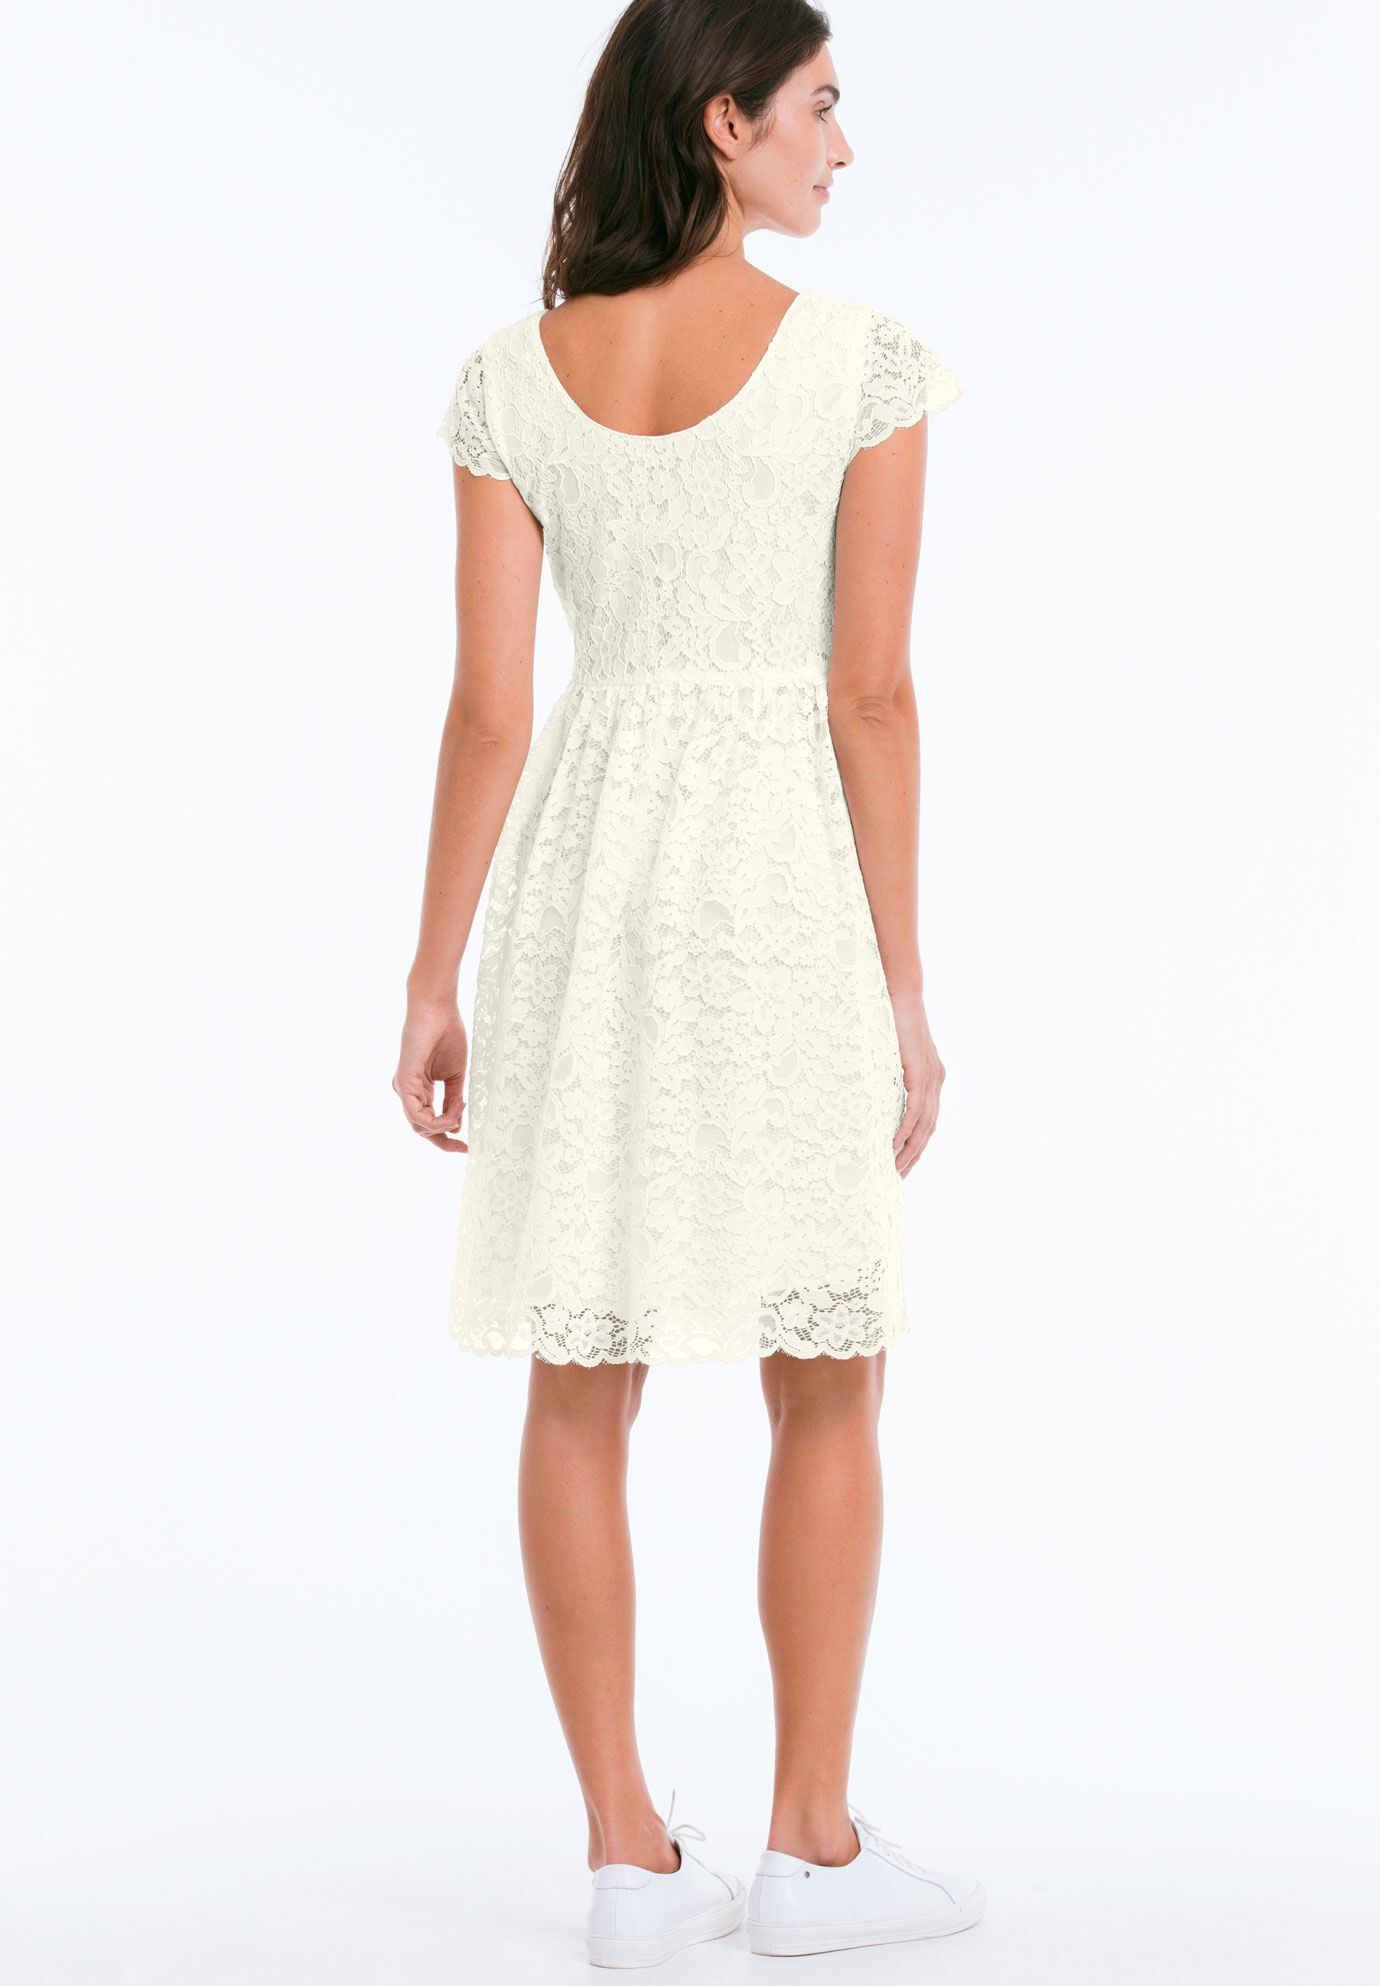 Roamans white belted dress